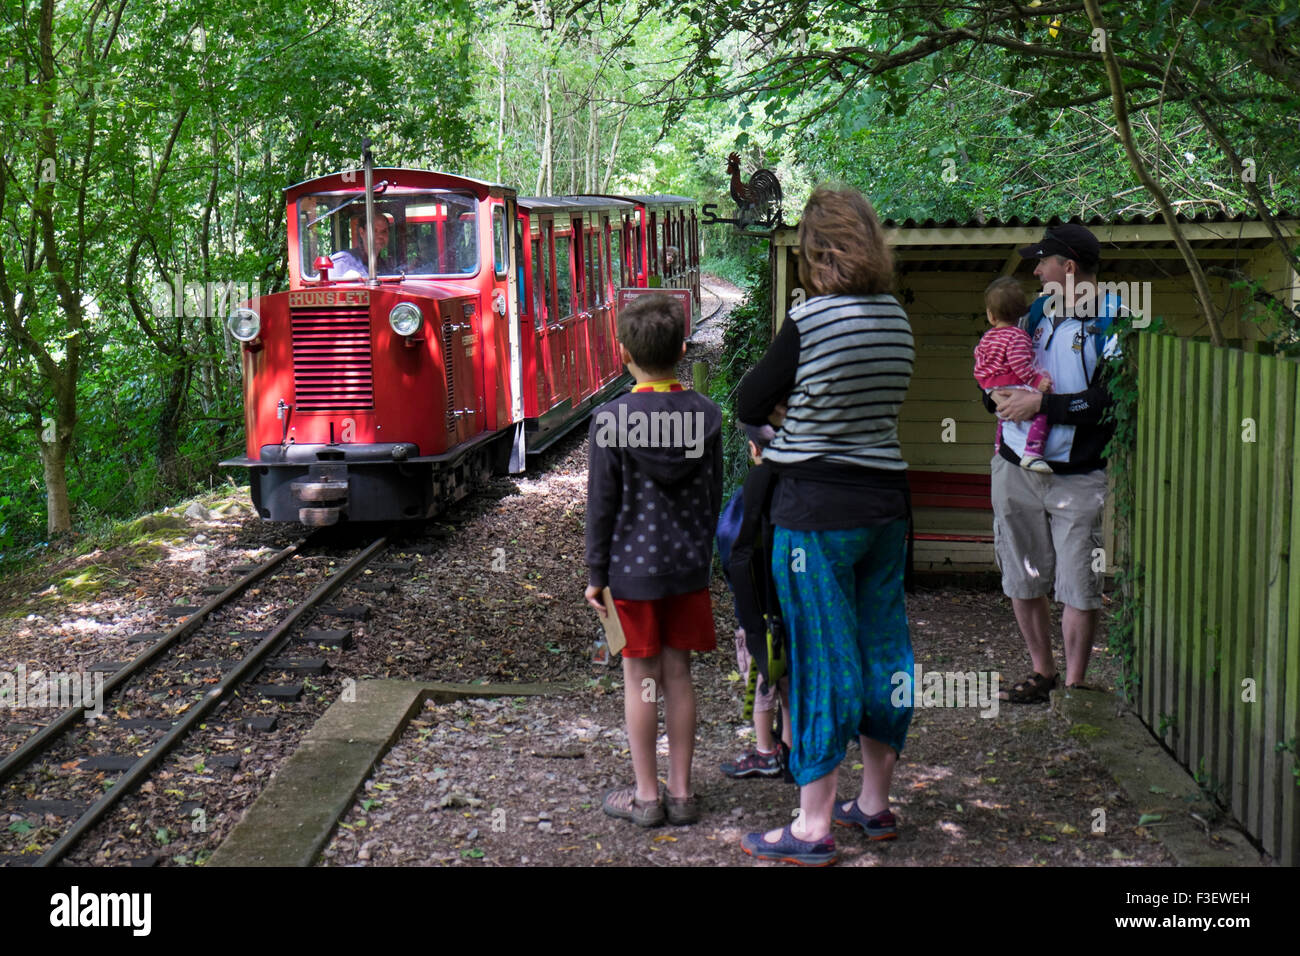 Family waiting for the train at Perrygrove Railway and Treetop Adventure, Coleford, Forest of Dean, England, UK - Stock Image